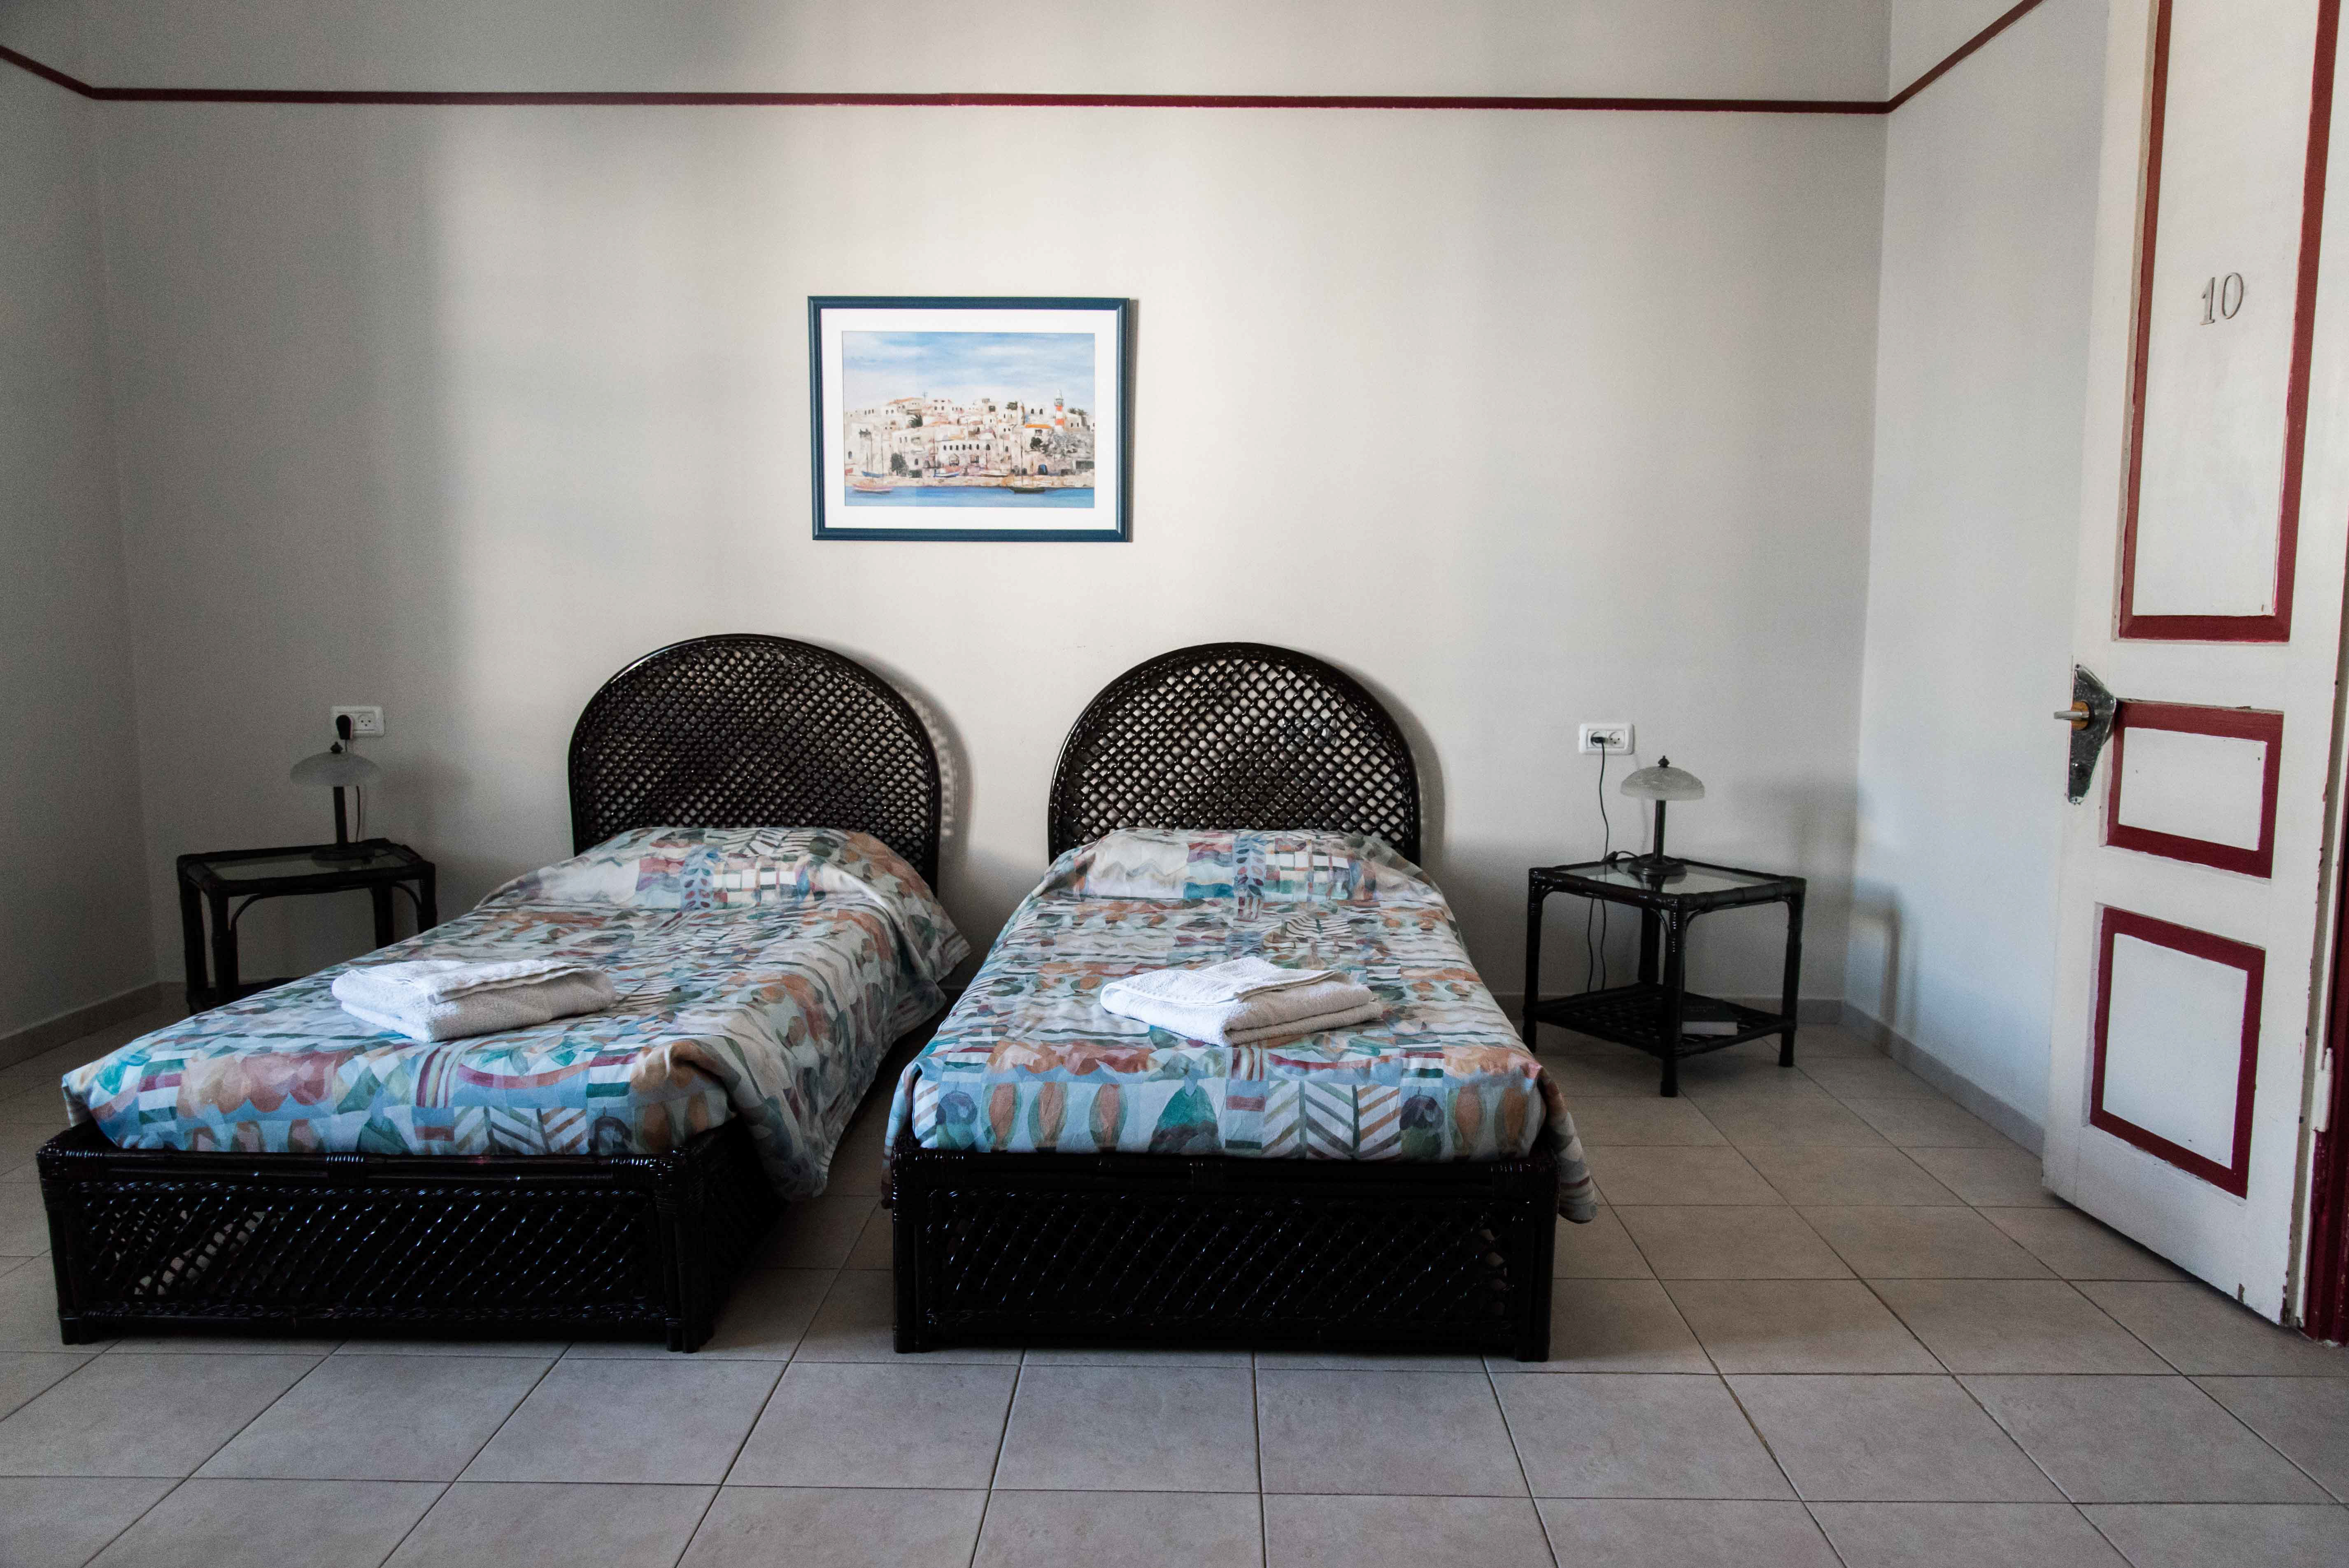 Rooms at Beit Immanuel